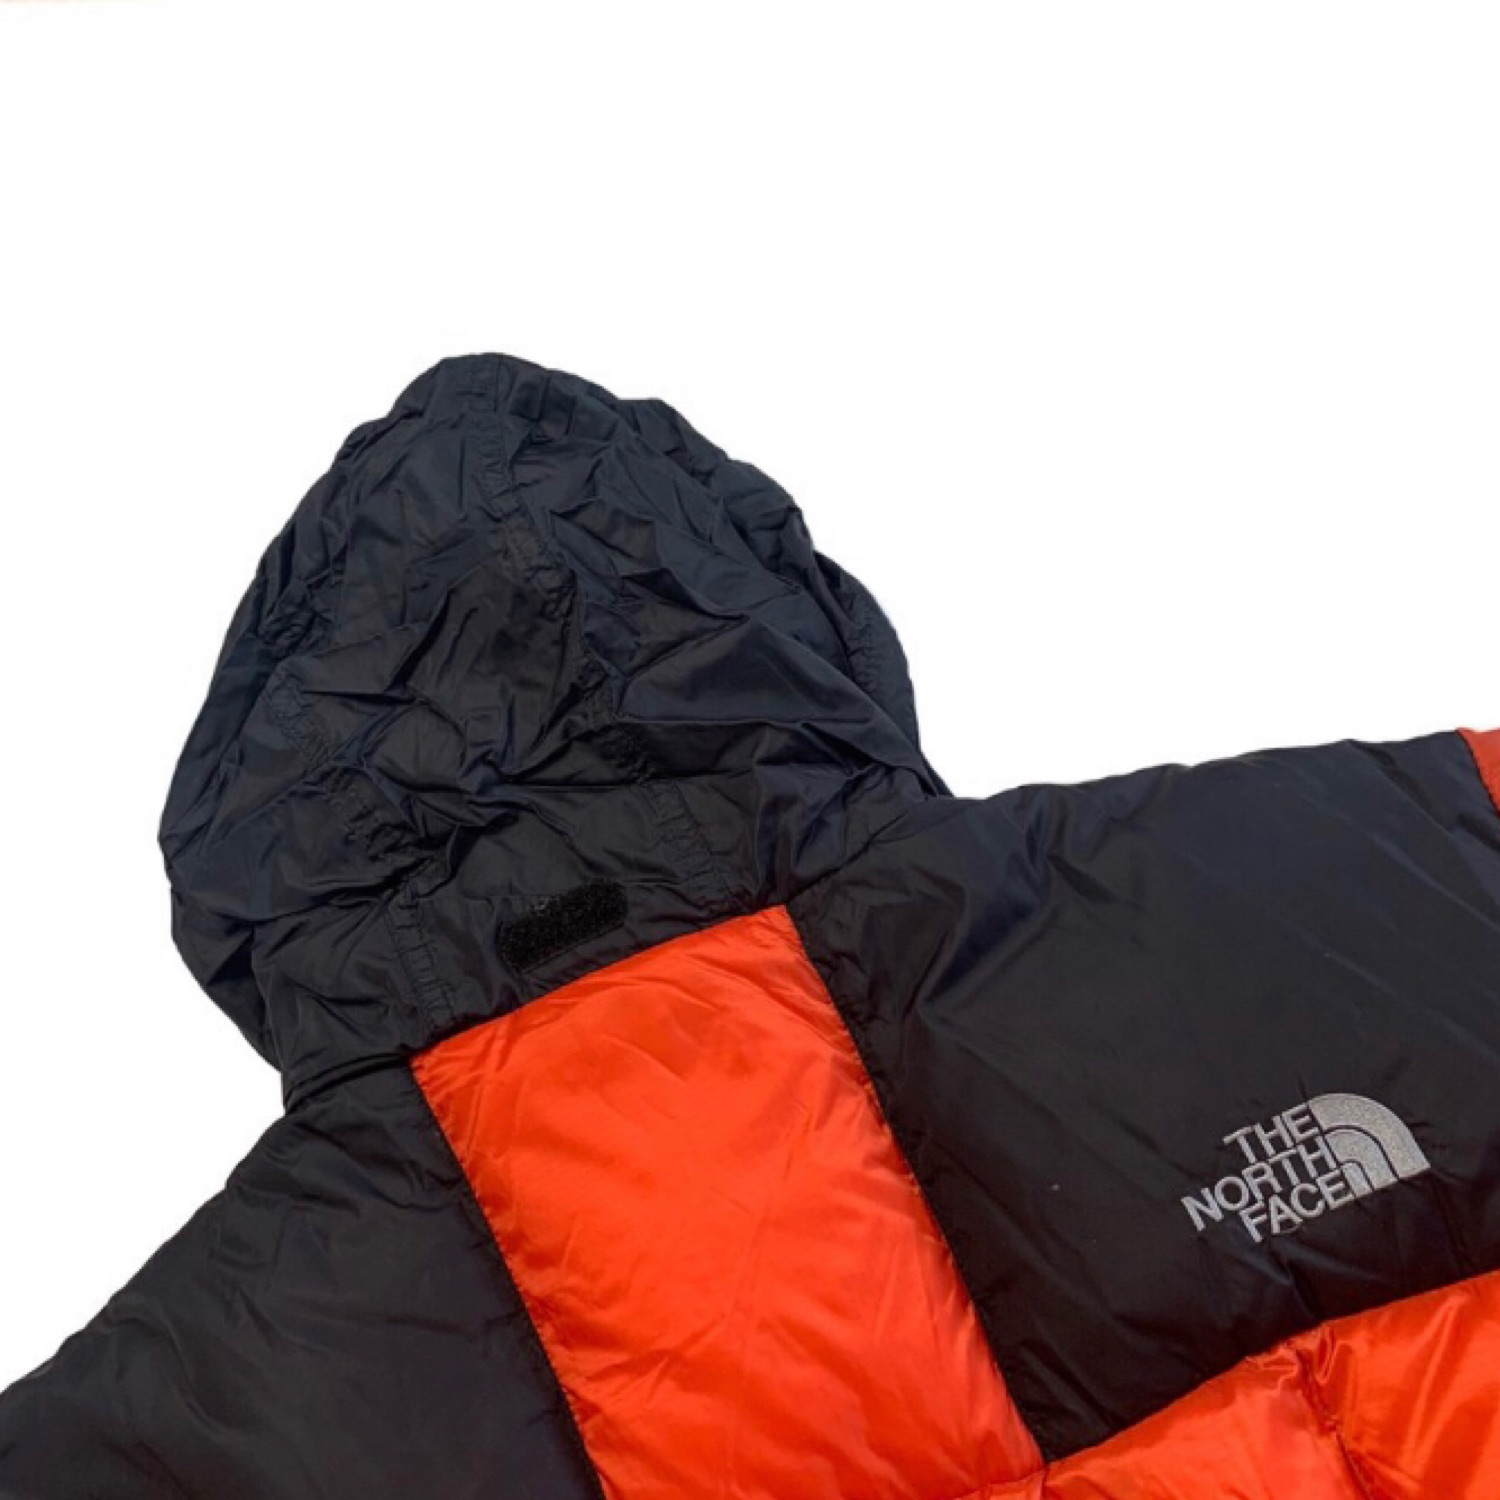 Orange North Face Puffer Jacket - Goose Down